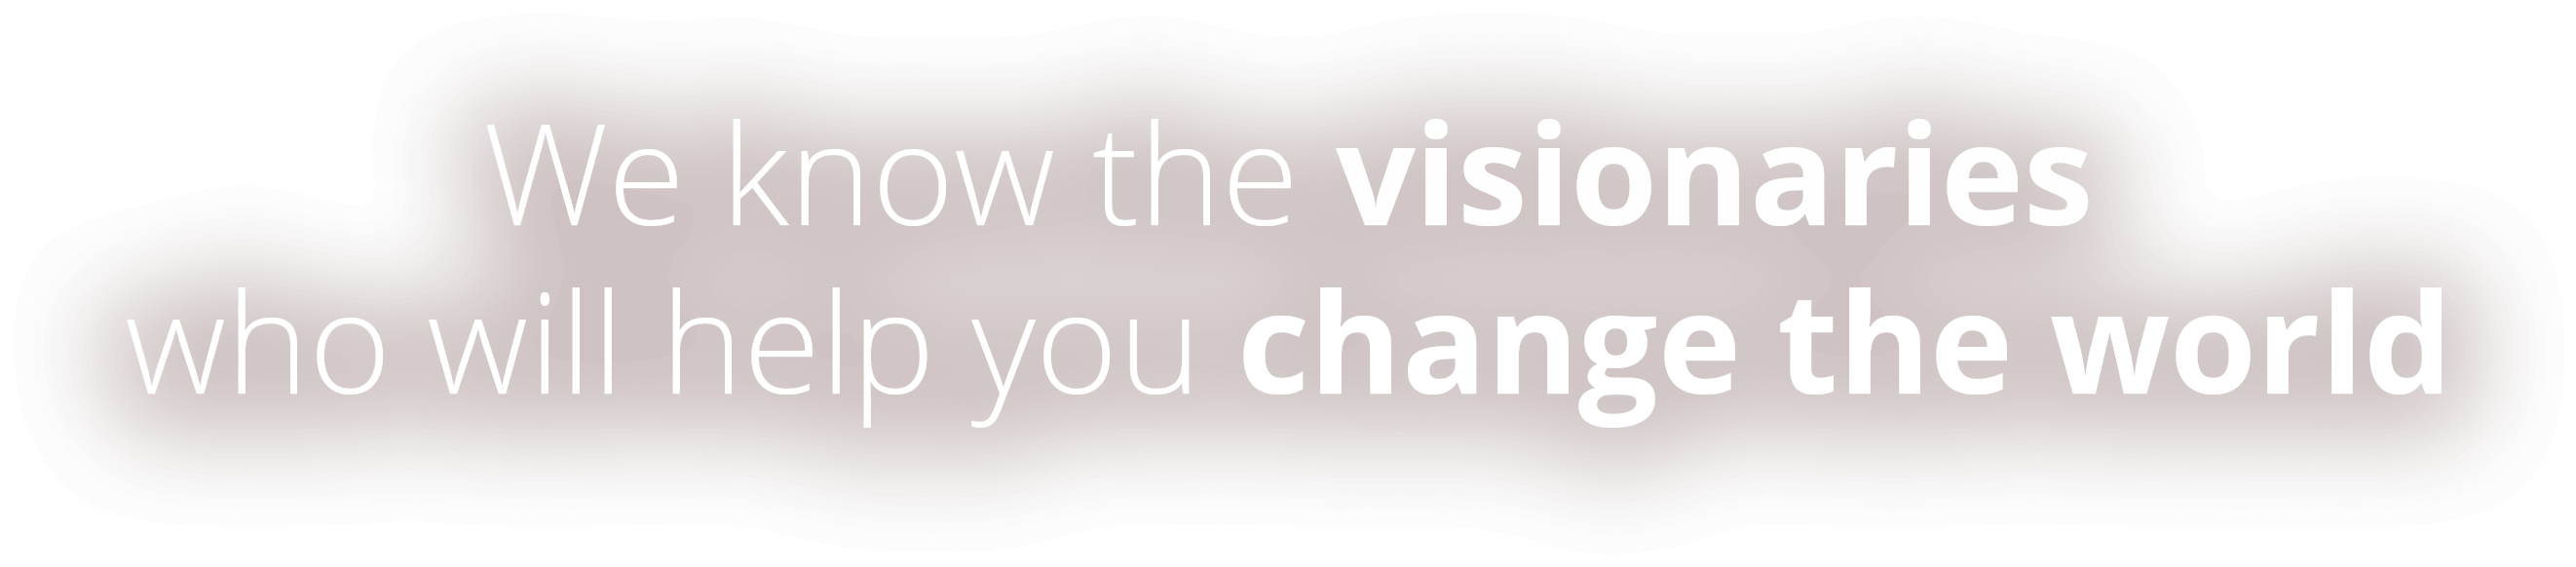 We know the visionaries who will help you change the world